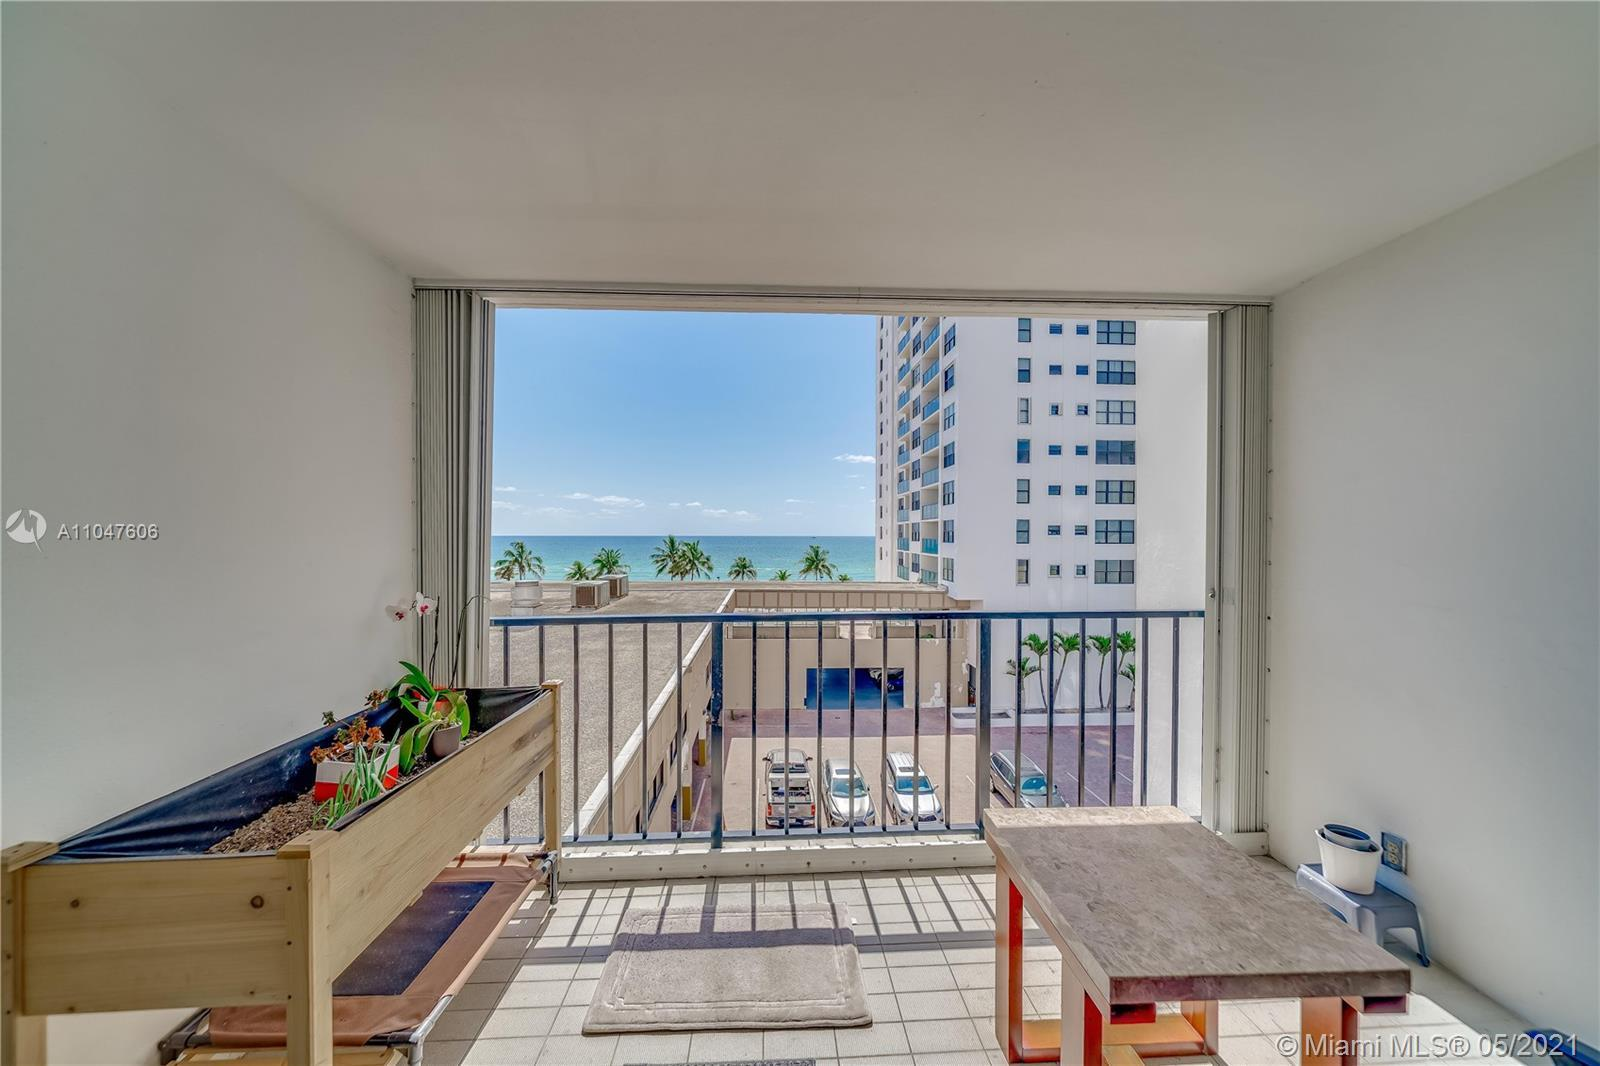 DIRECT OCEAN FRONT MILLION DOLLAR VIEWS.  This very spacious, beach front condo can be yours for an